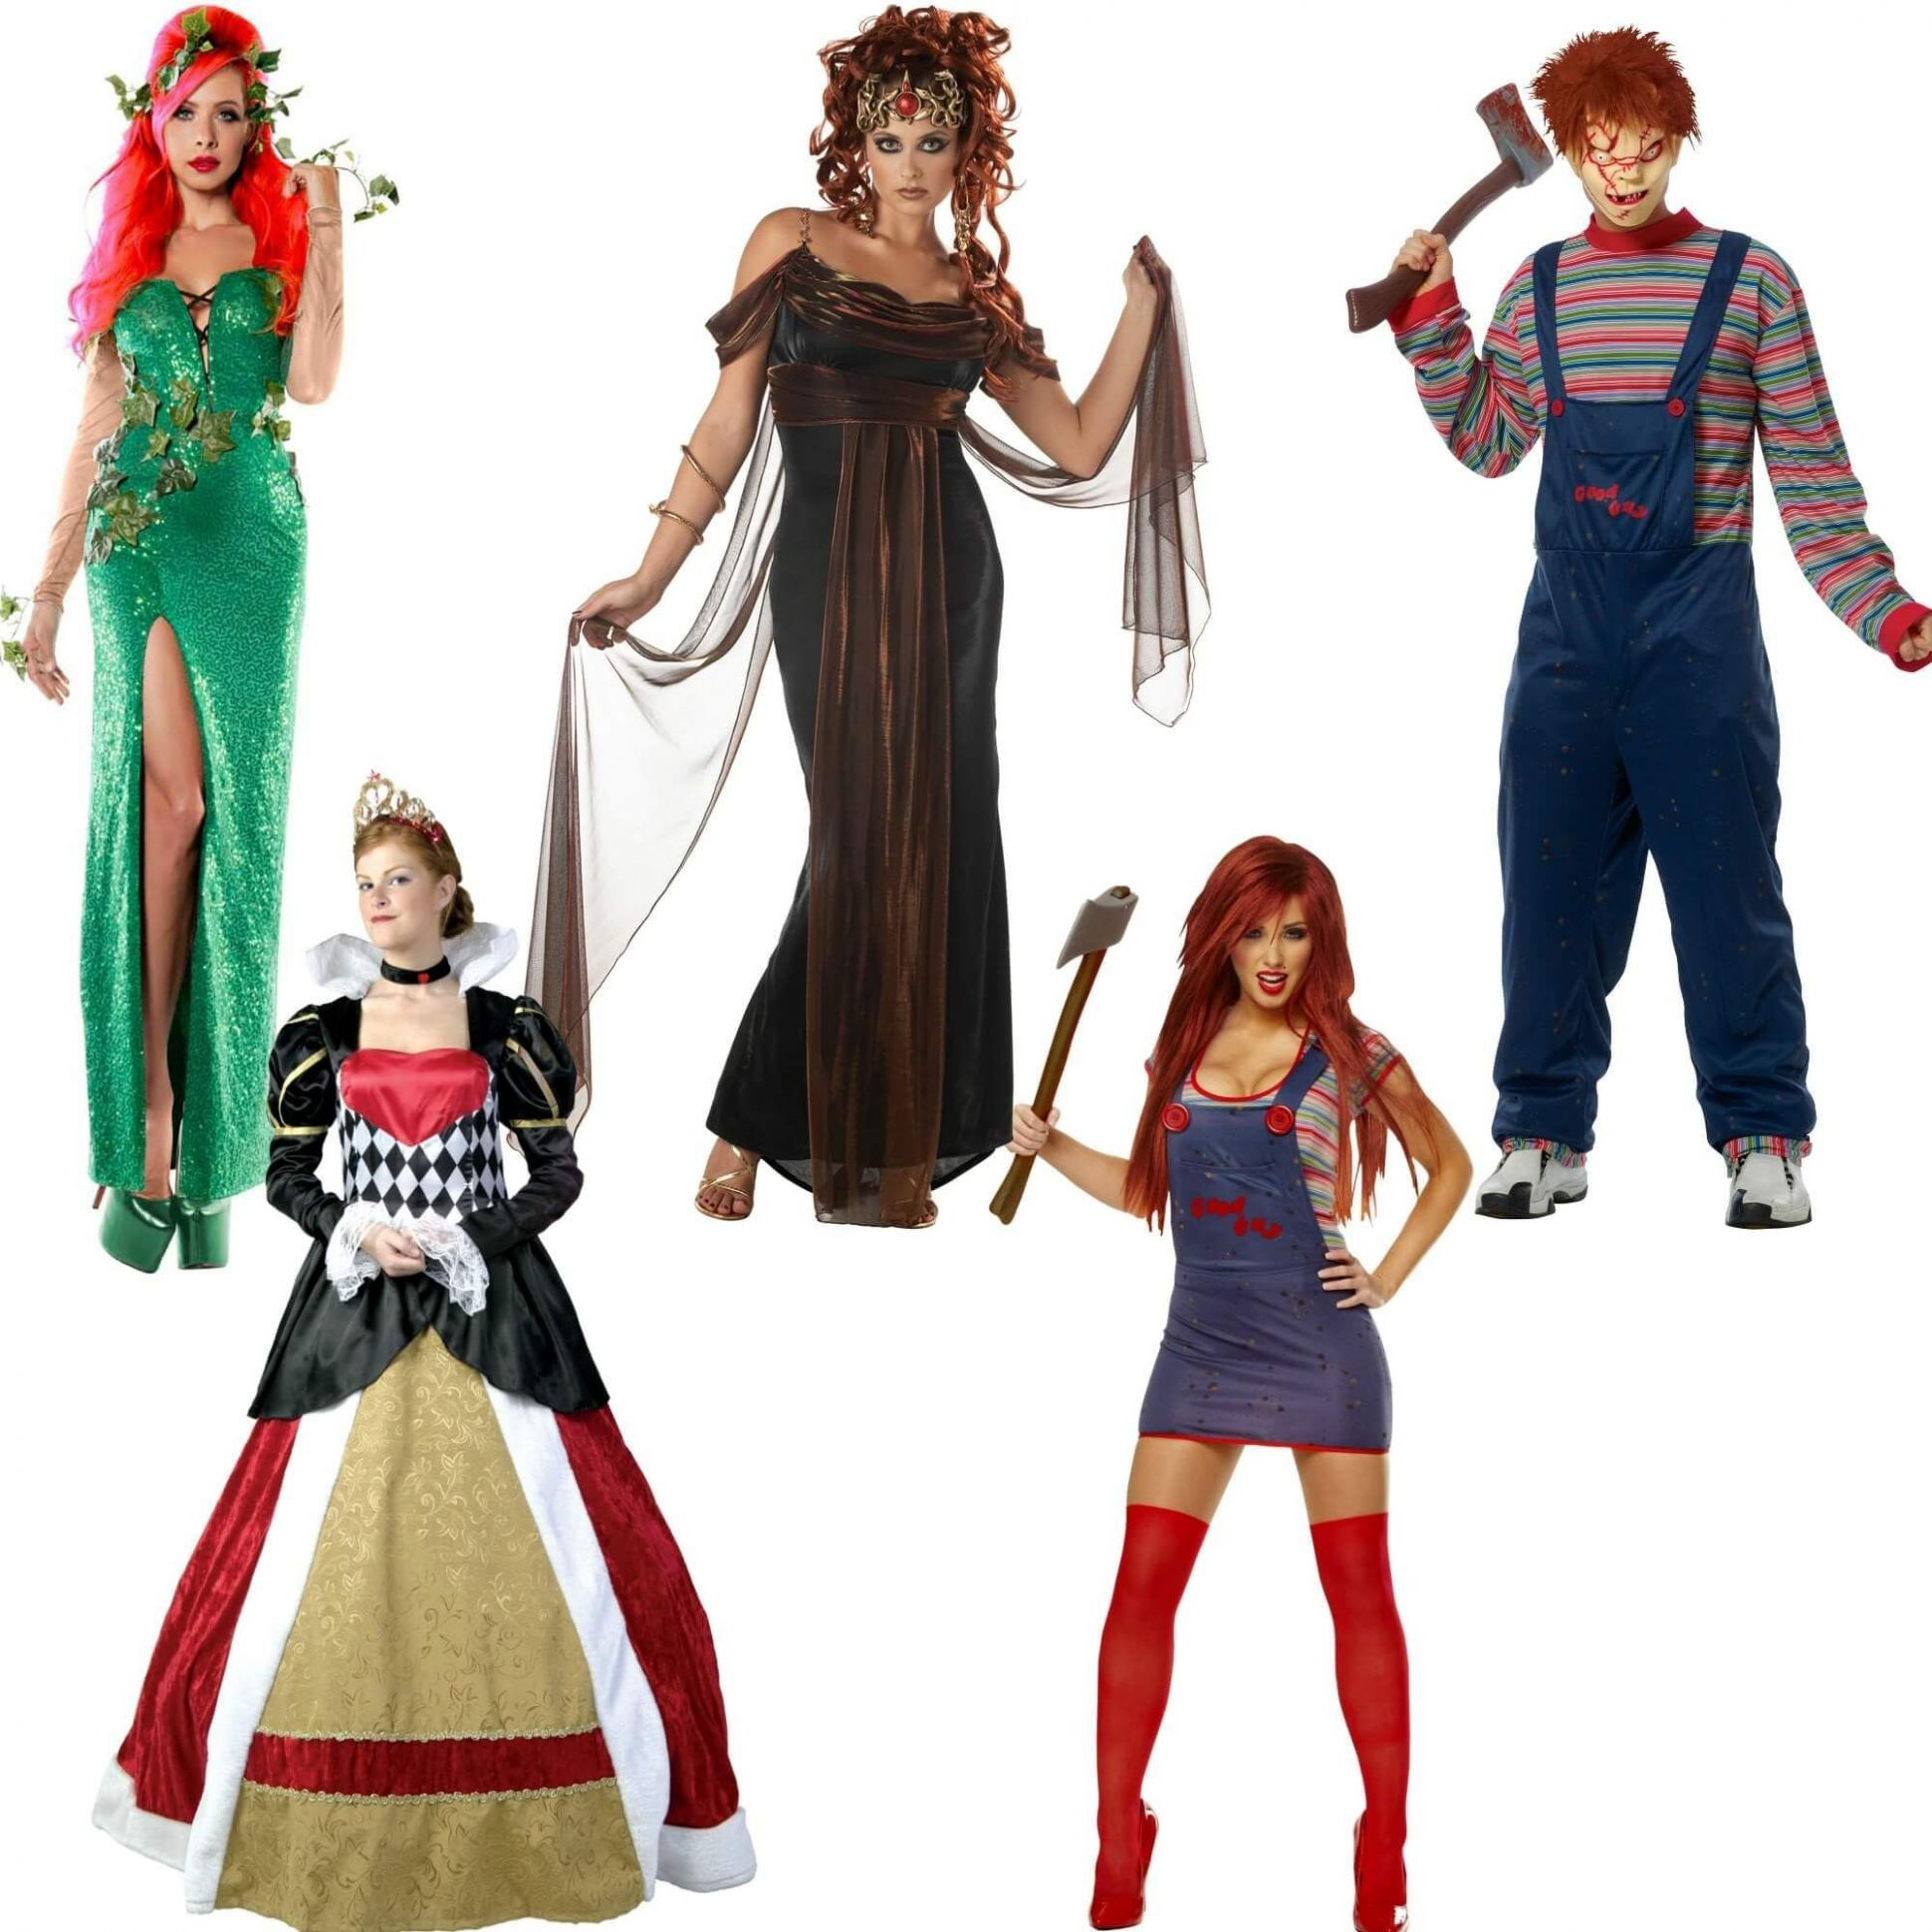 Halloween Costumes for Redheads (With images) | Red head halloween ..